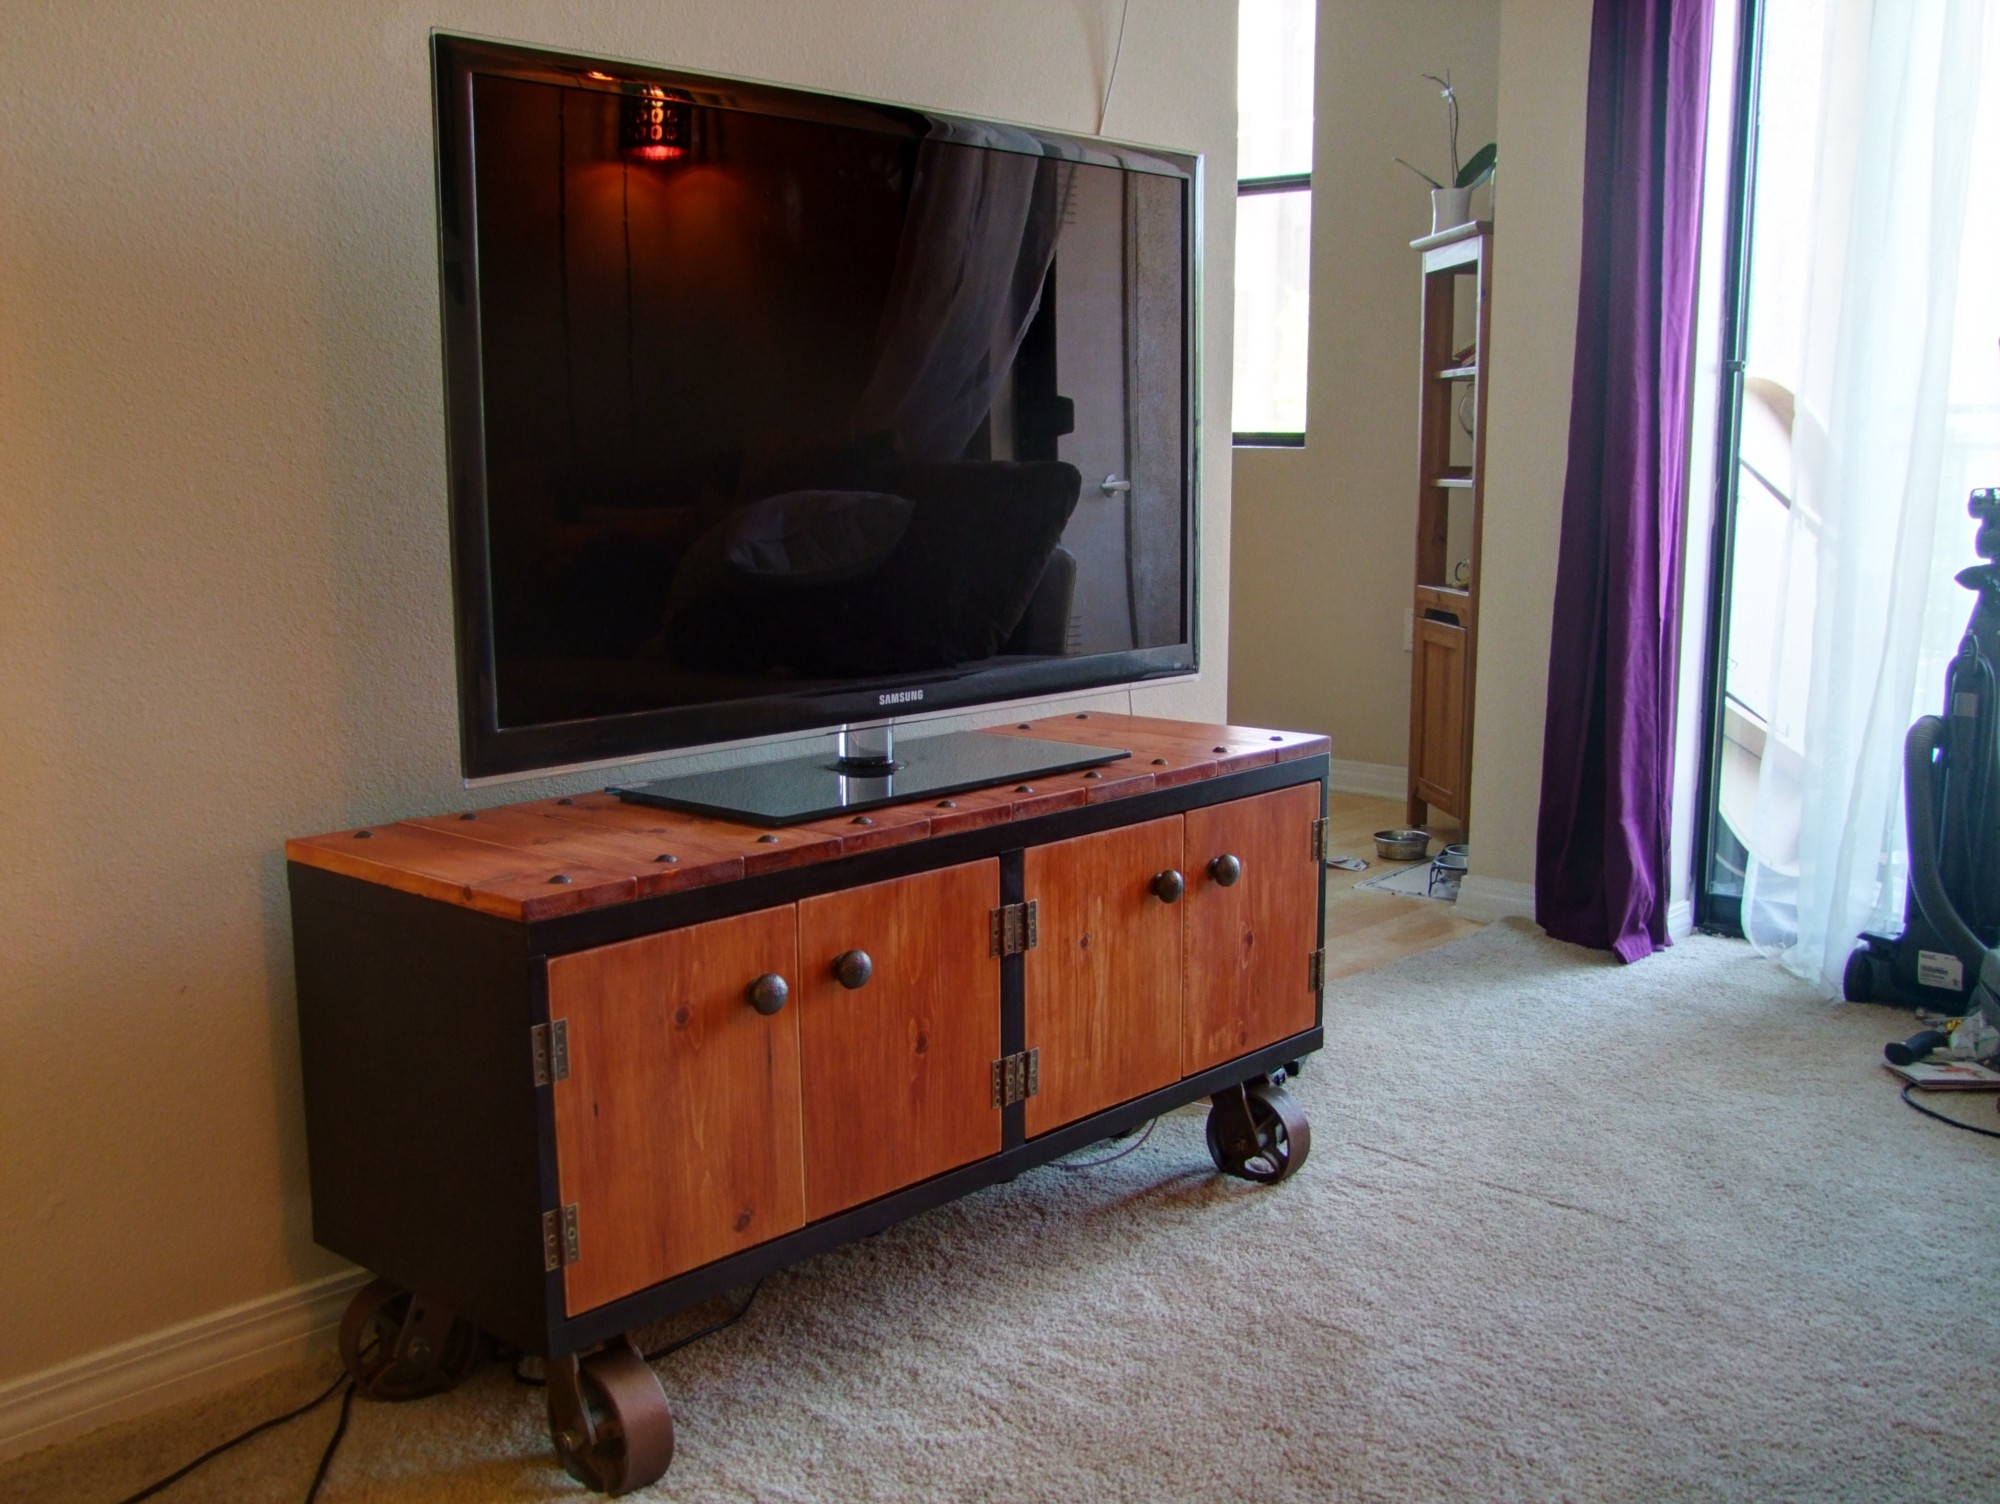 diy industrial tv stand ikea hack step by step philippe berry medium. Black Bedroom Furniture Sets. Home Design Ideas